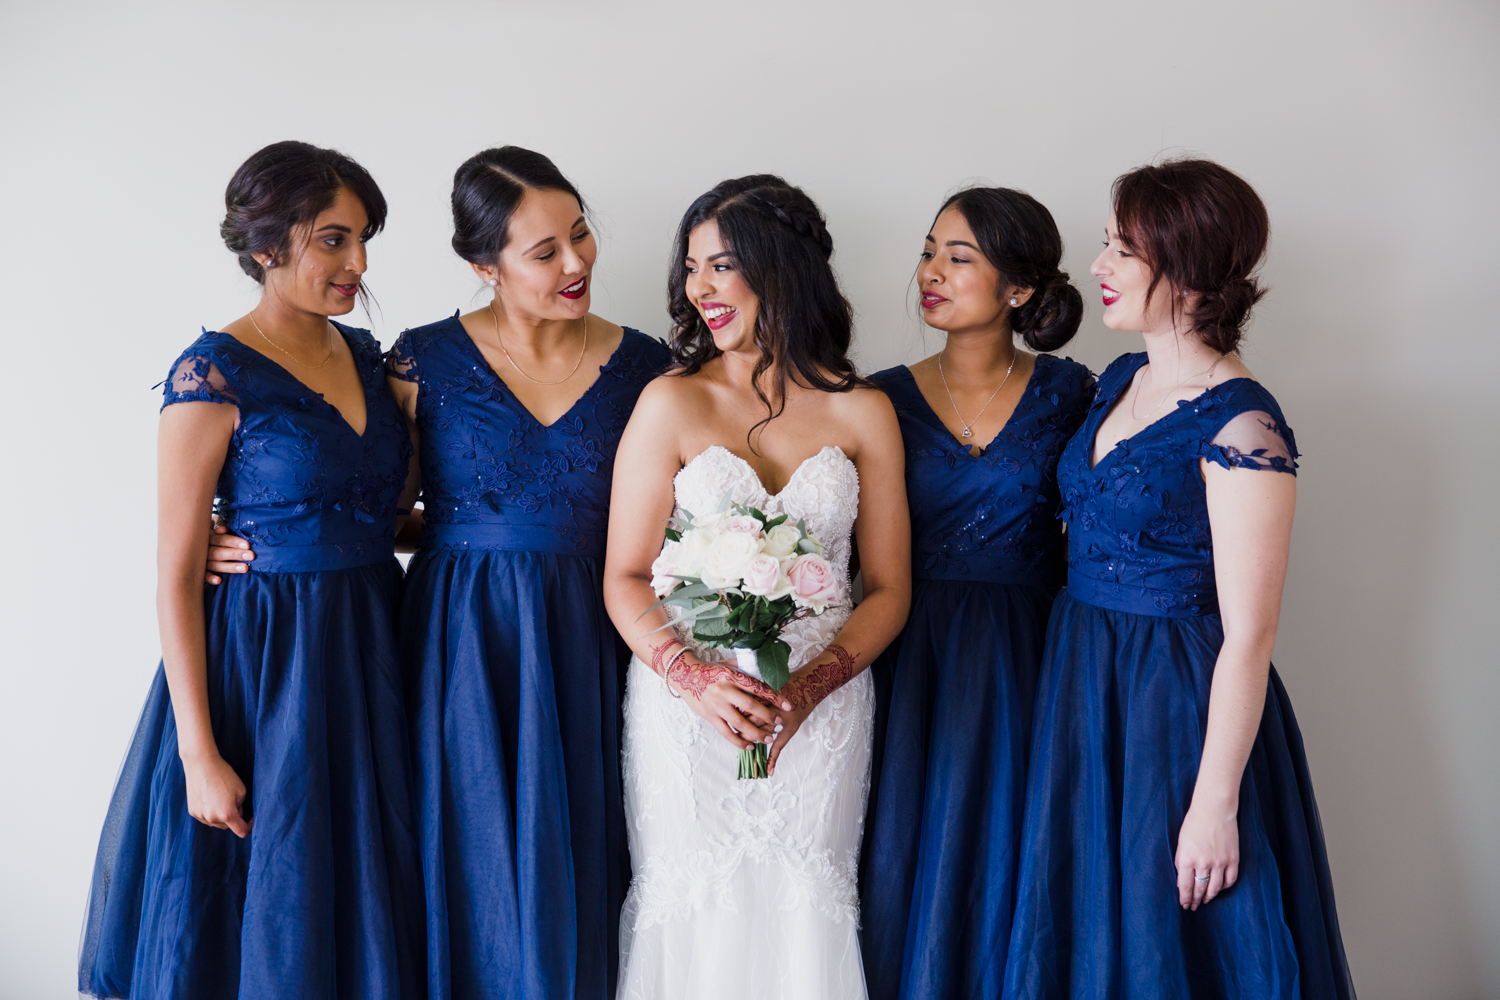 A stunning bridal portrait of a Bride and her Bride's maids taken just before leaving home for the wedding. This image was taken by Mala Photography, an Auckland based wedding photographer. The wedding was at Markovina Vineyard Estate In Kumeu, Auckland.